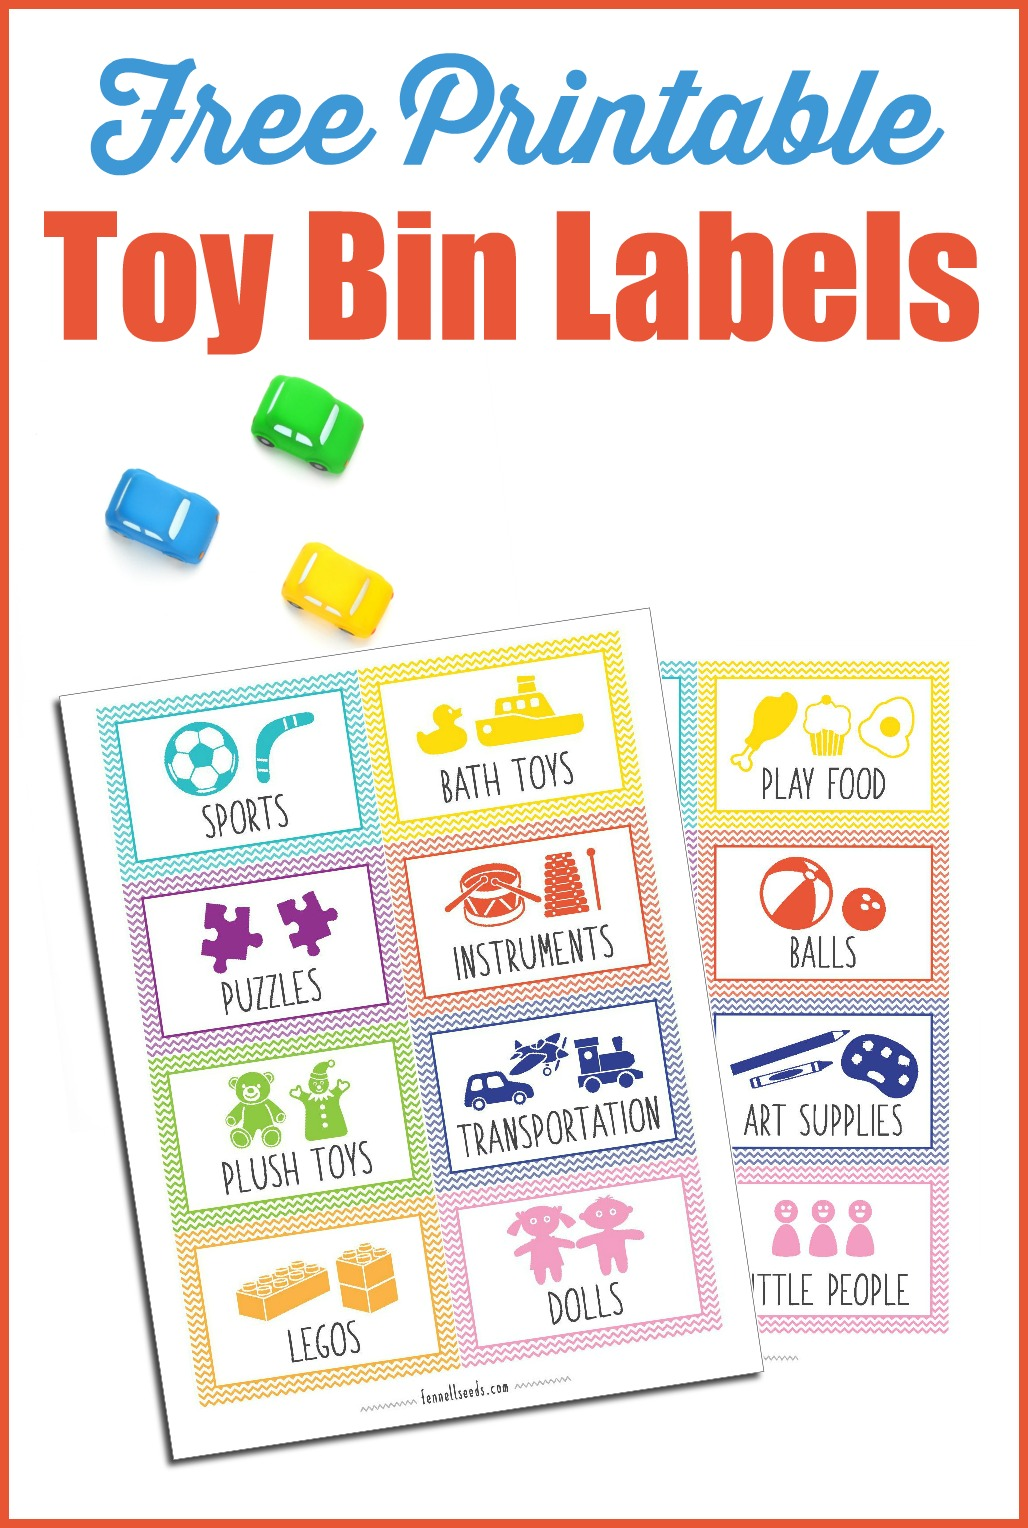 Best Way To Organize Pantry Printable Toy Bin Labels That Are Cute And Free